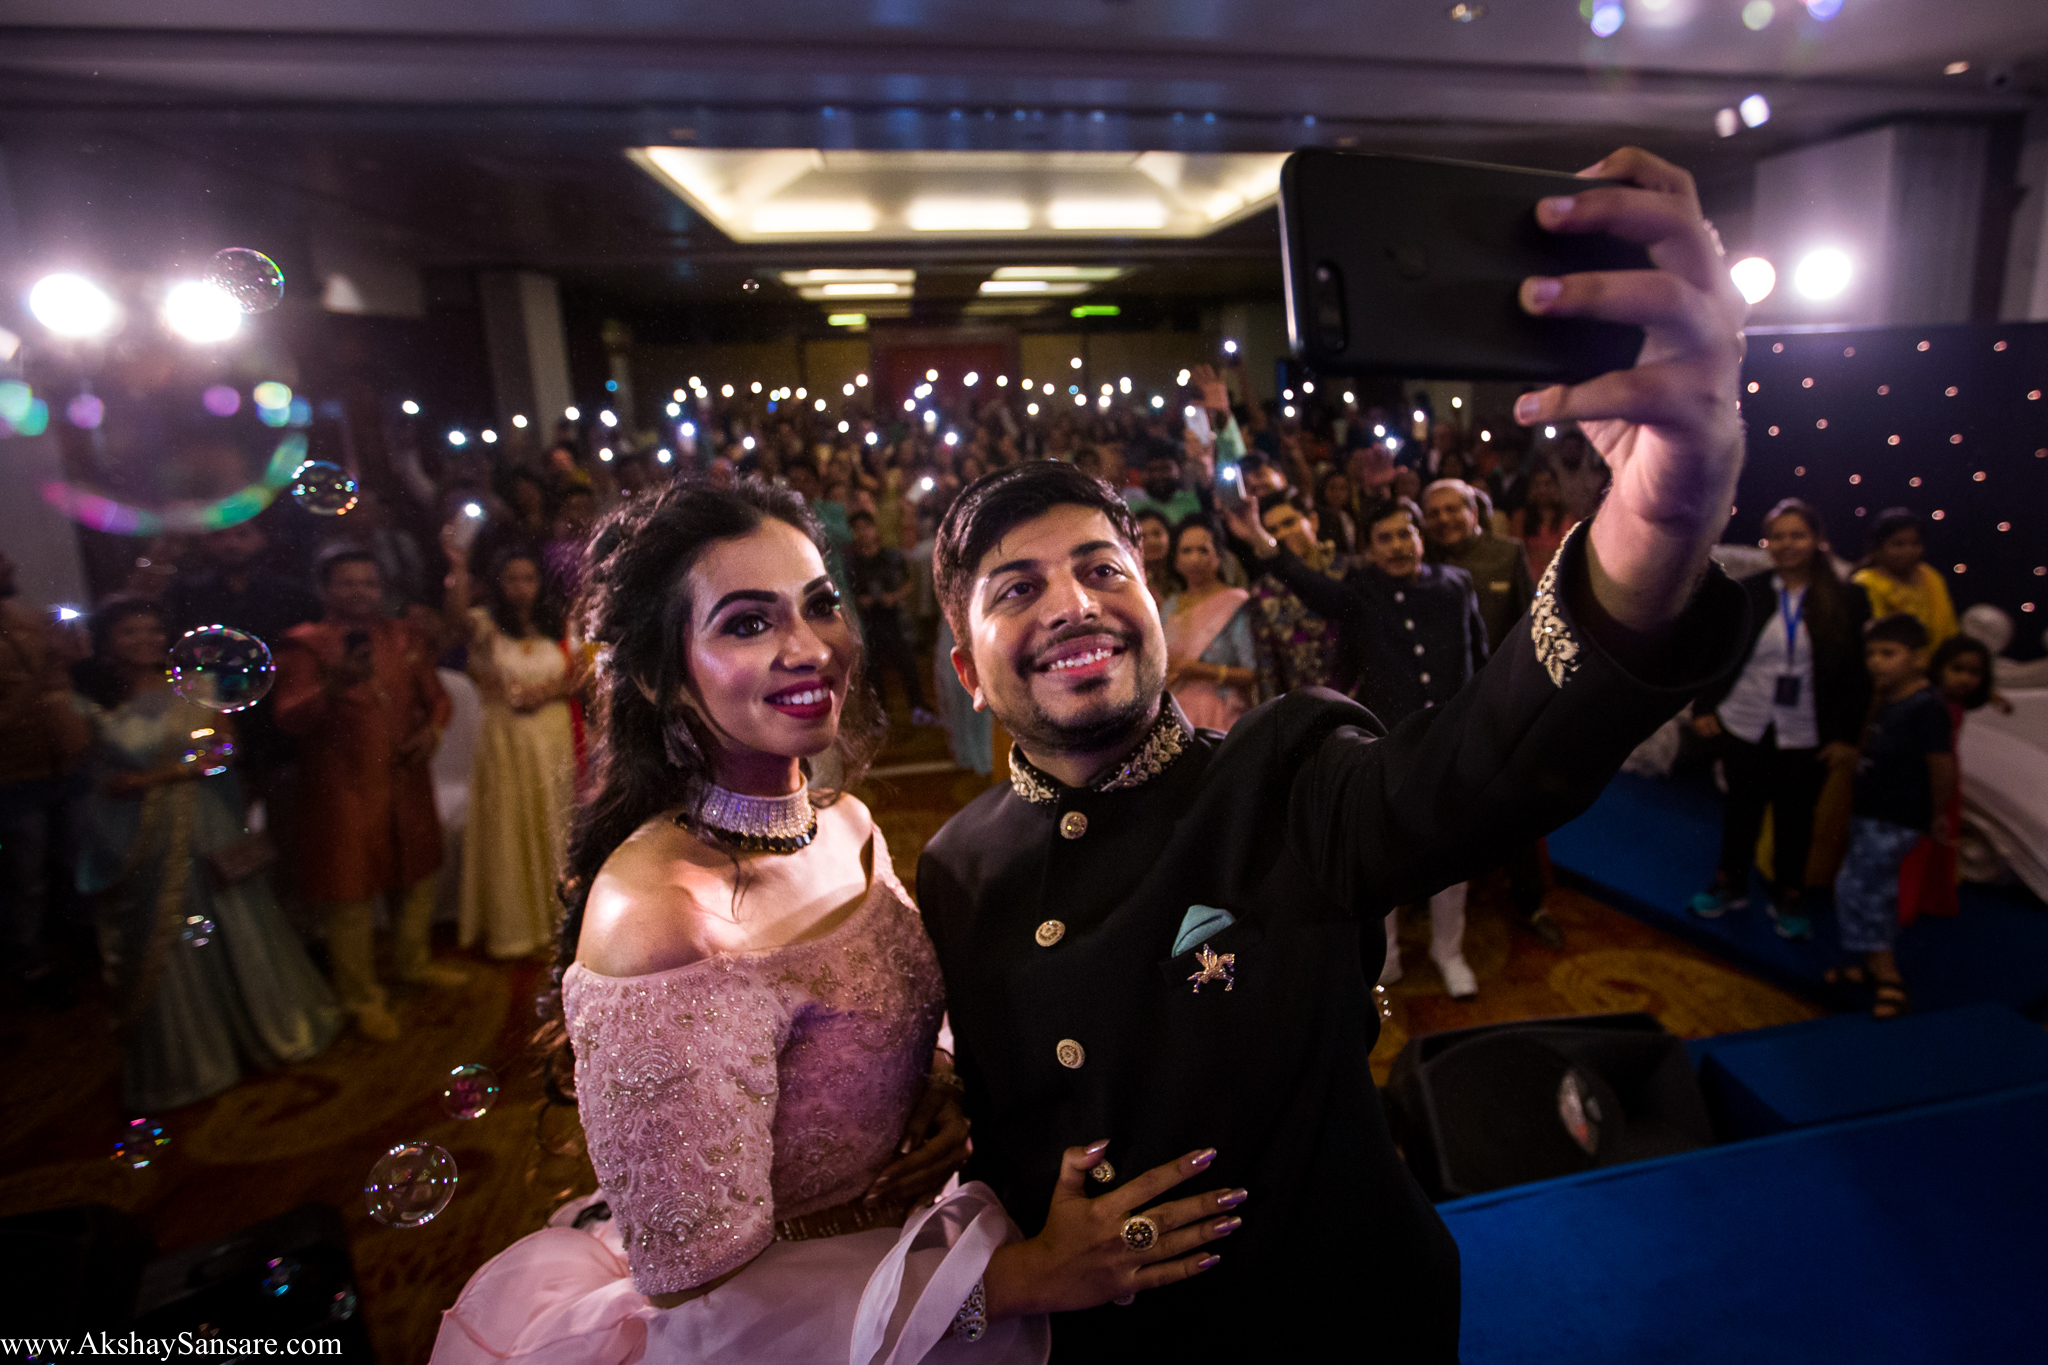 Nupur & Rohan wedding Akshay Sansare Photography best wedding photographer in mumbai India Candid(4).jpg